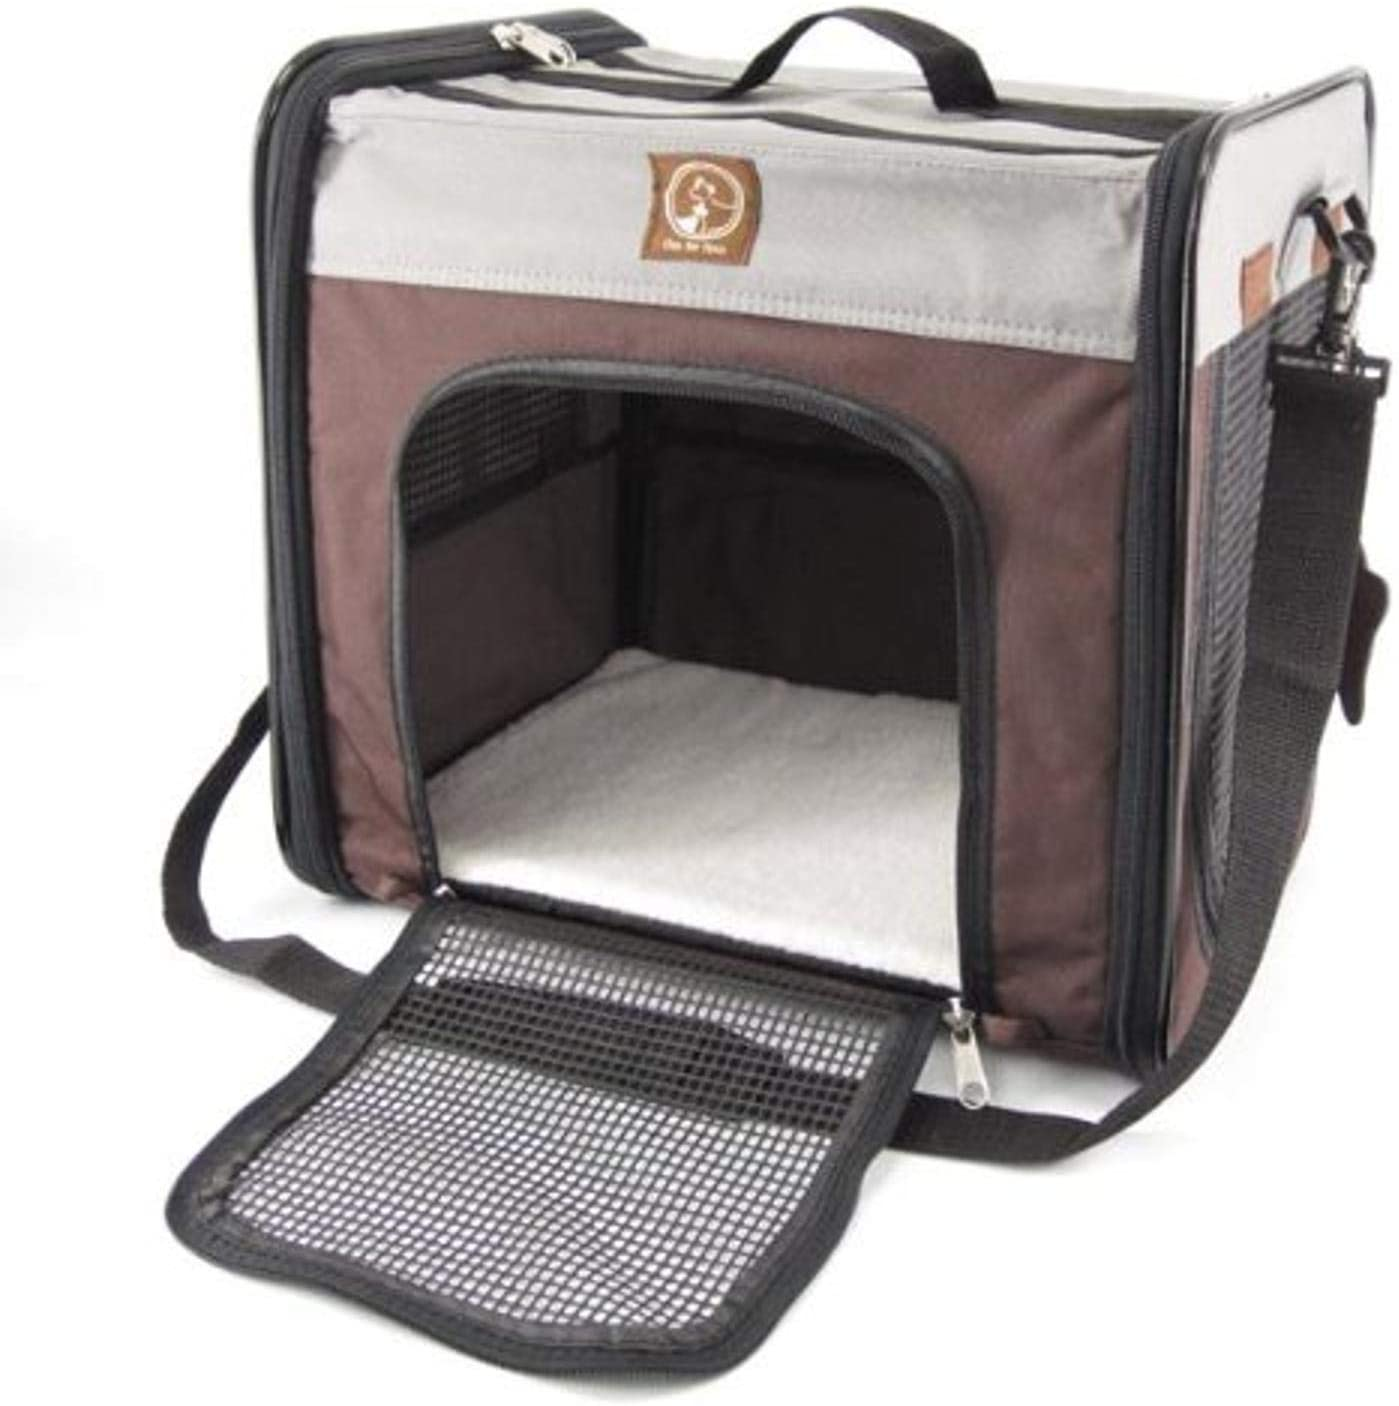 One for Pets Folding Carrier-The Cube